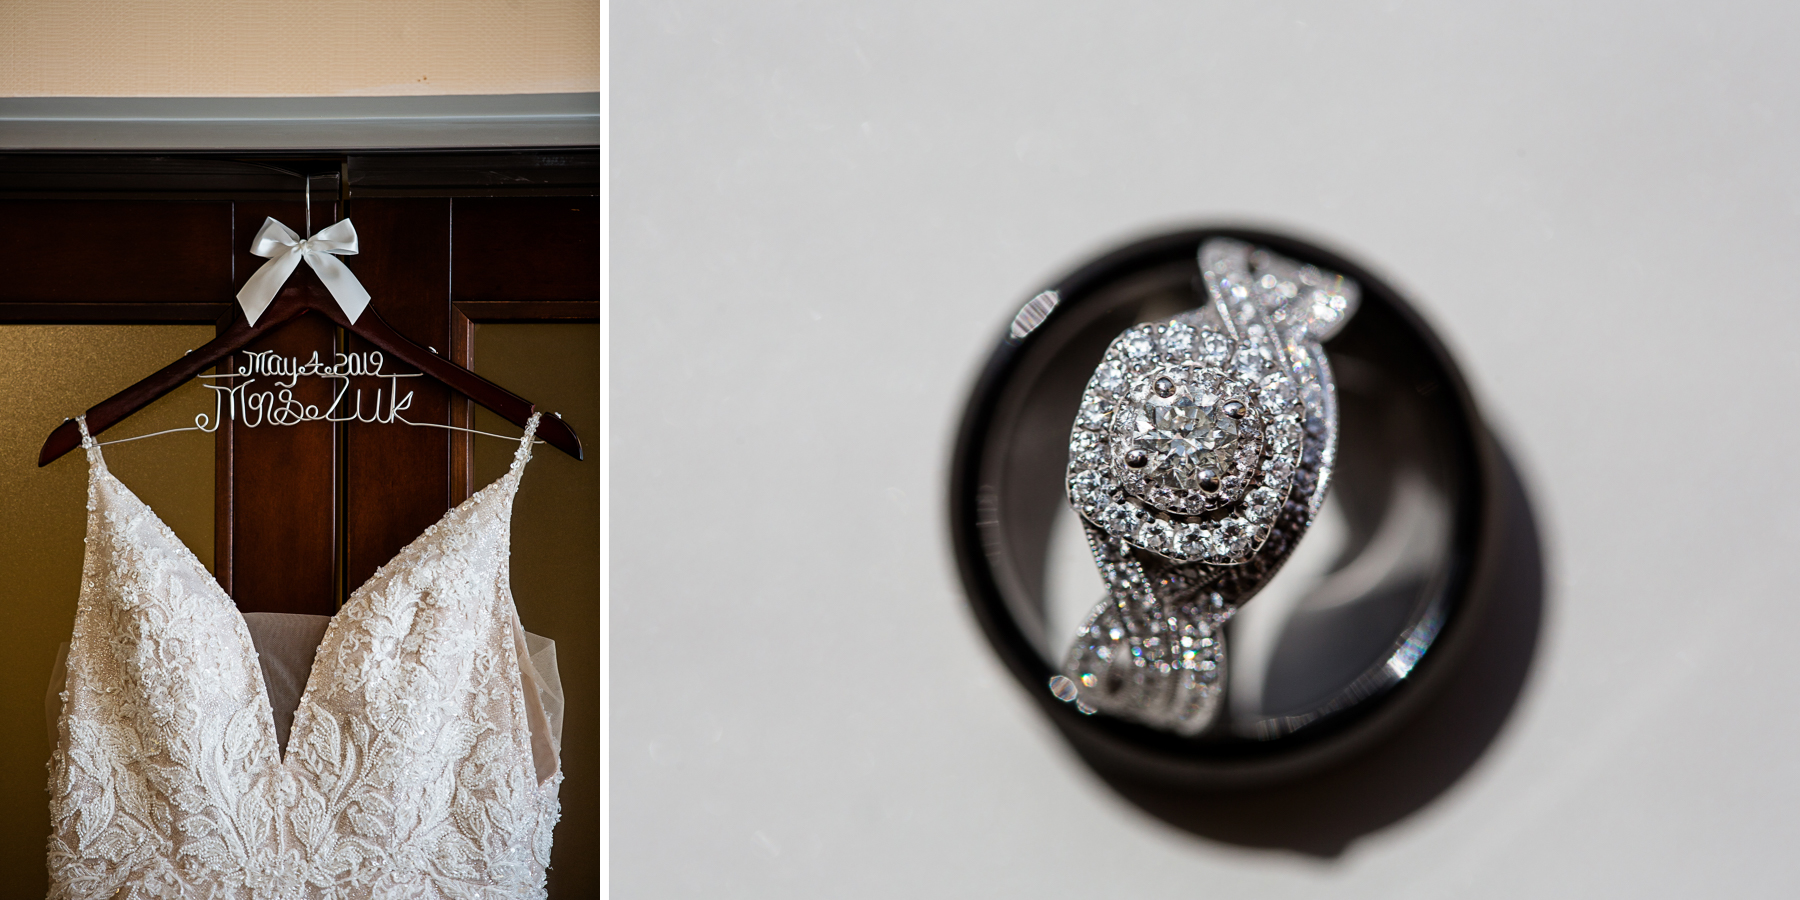 Peoria Illinois Wedding Ring and Dress